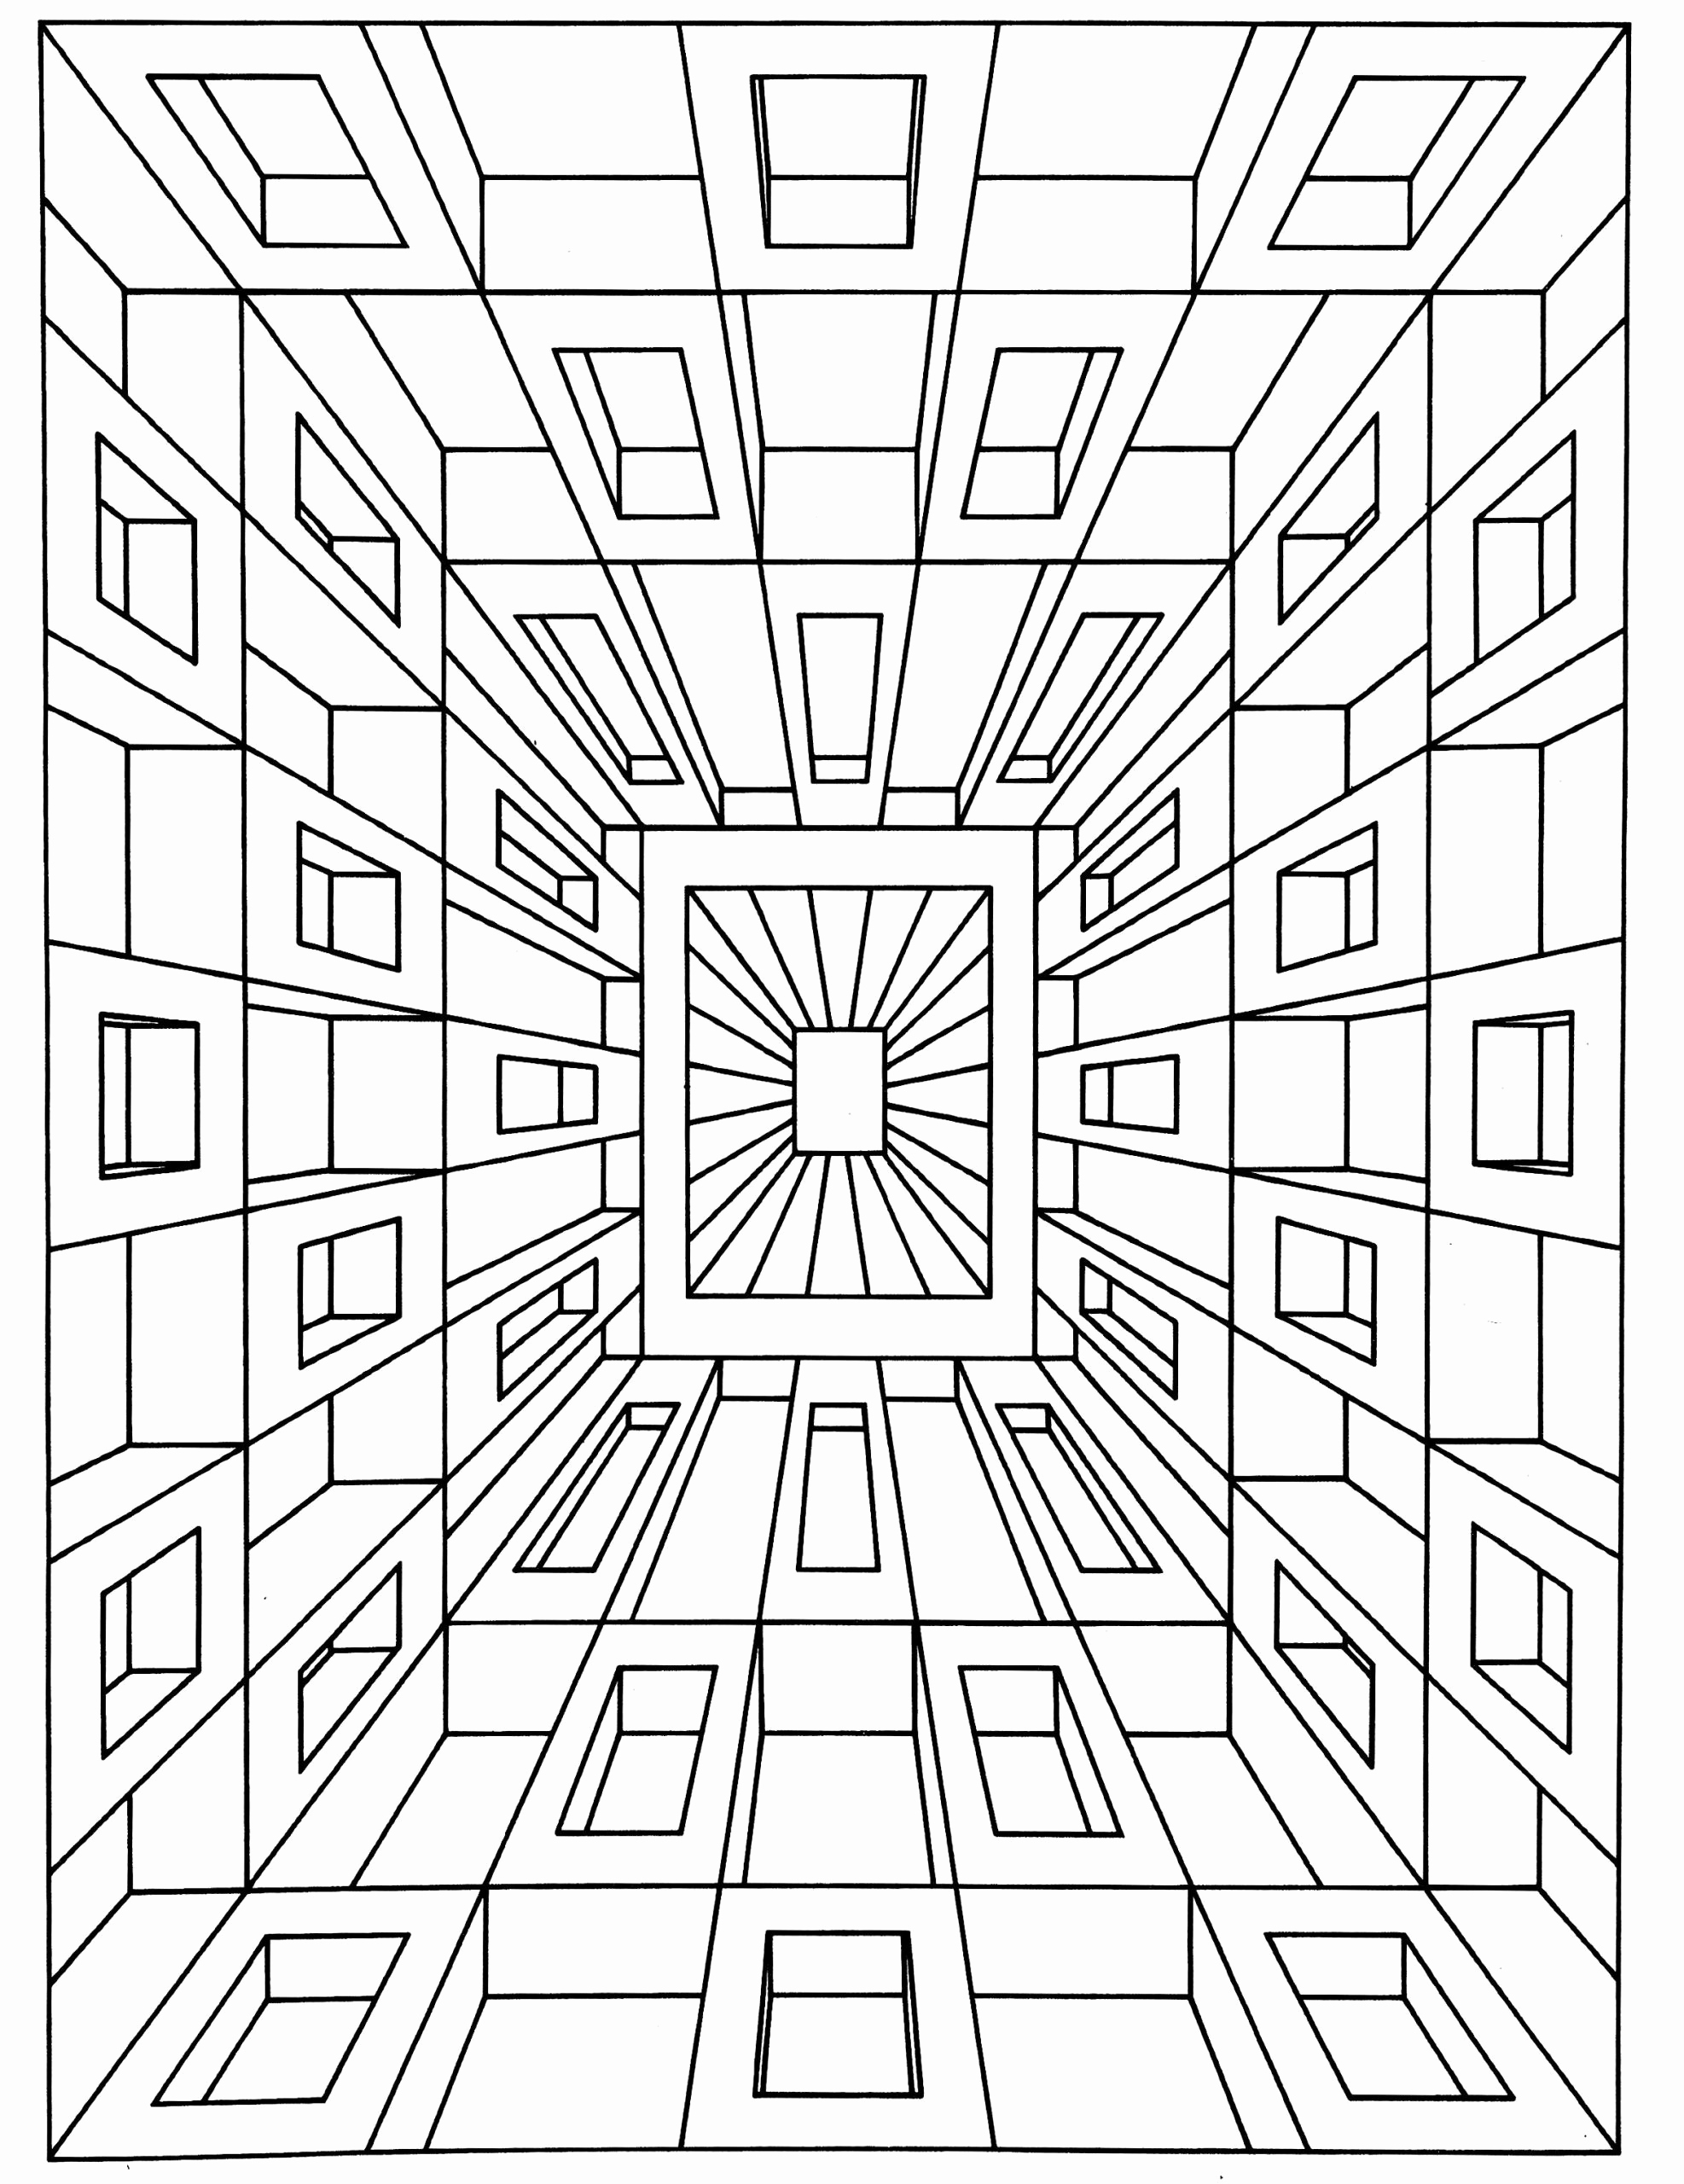 Optical Illusion Worksheets Printable Lovely 20 Optical Illusion Worksheets Printable